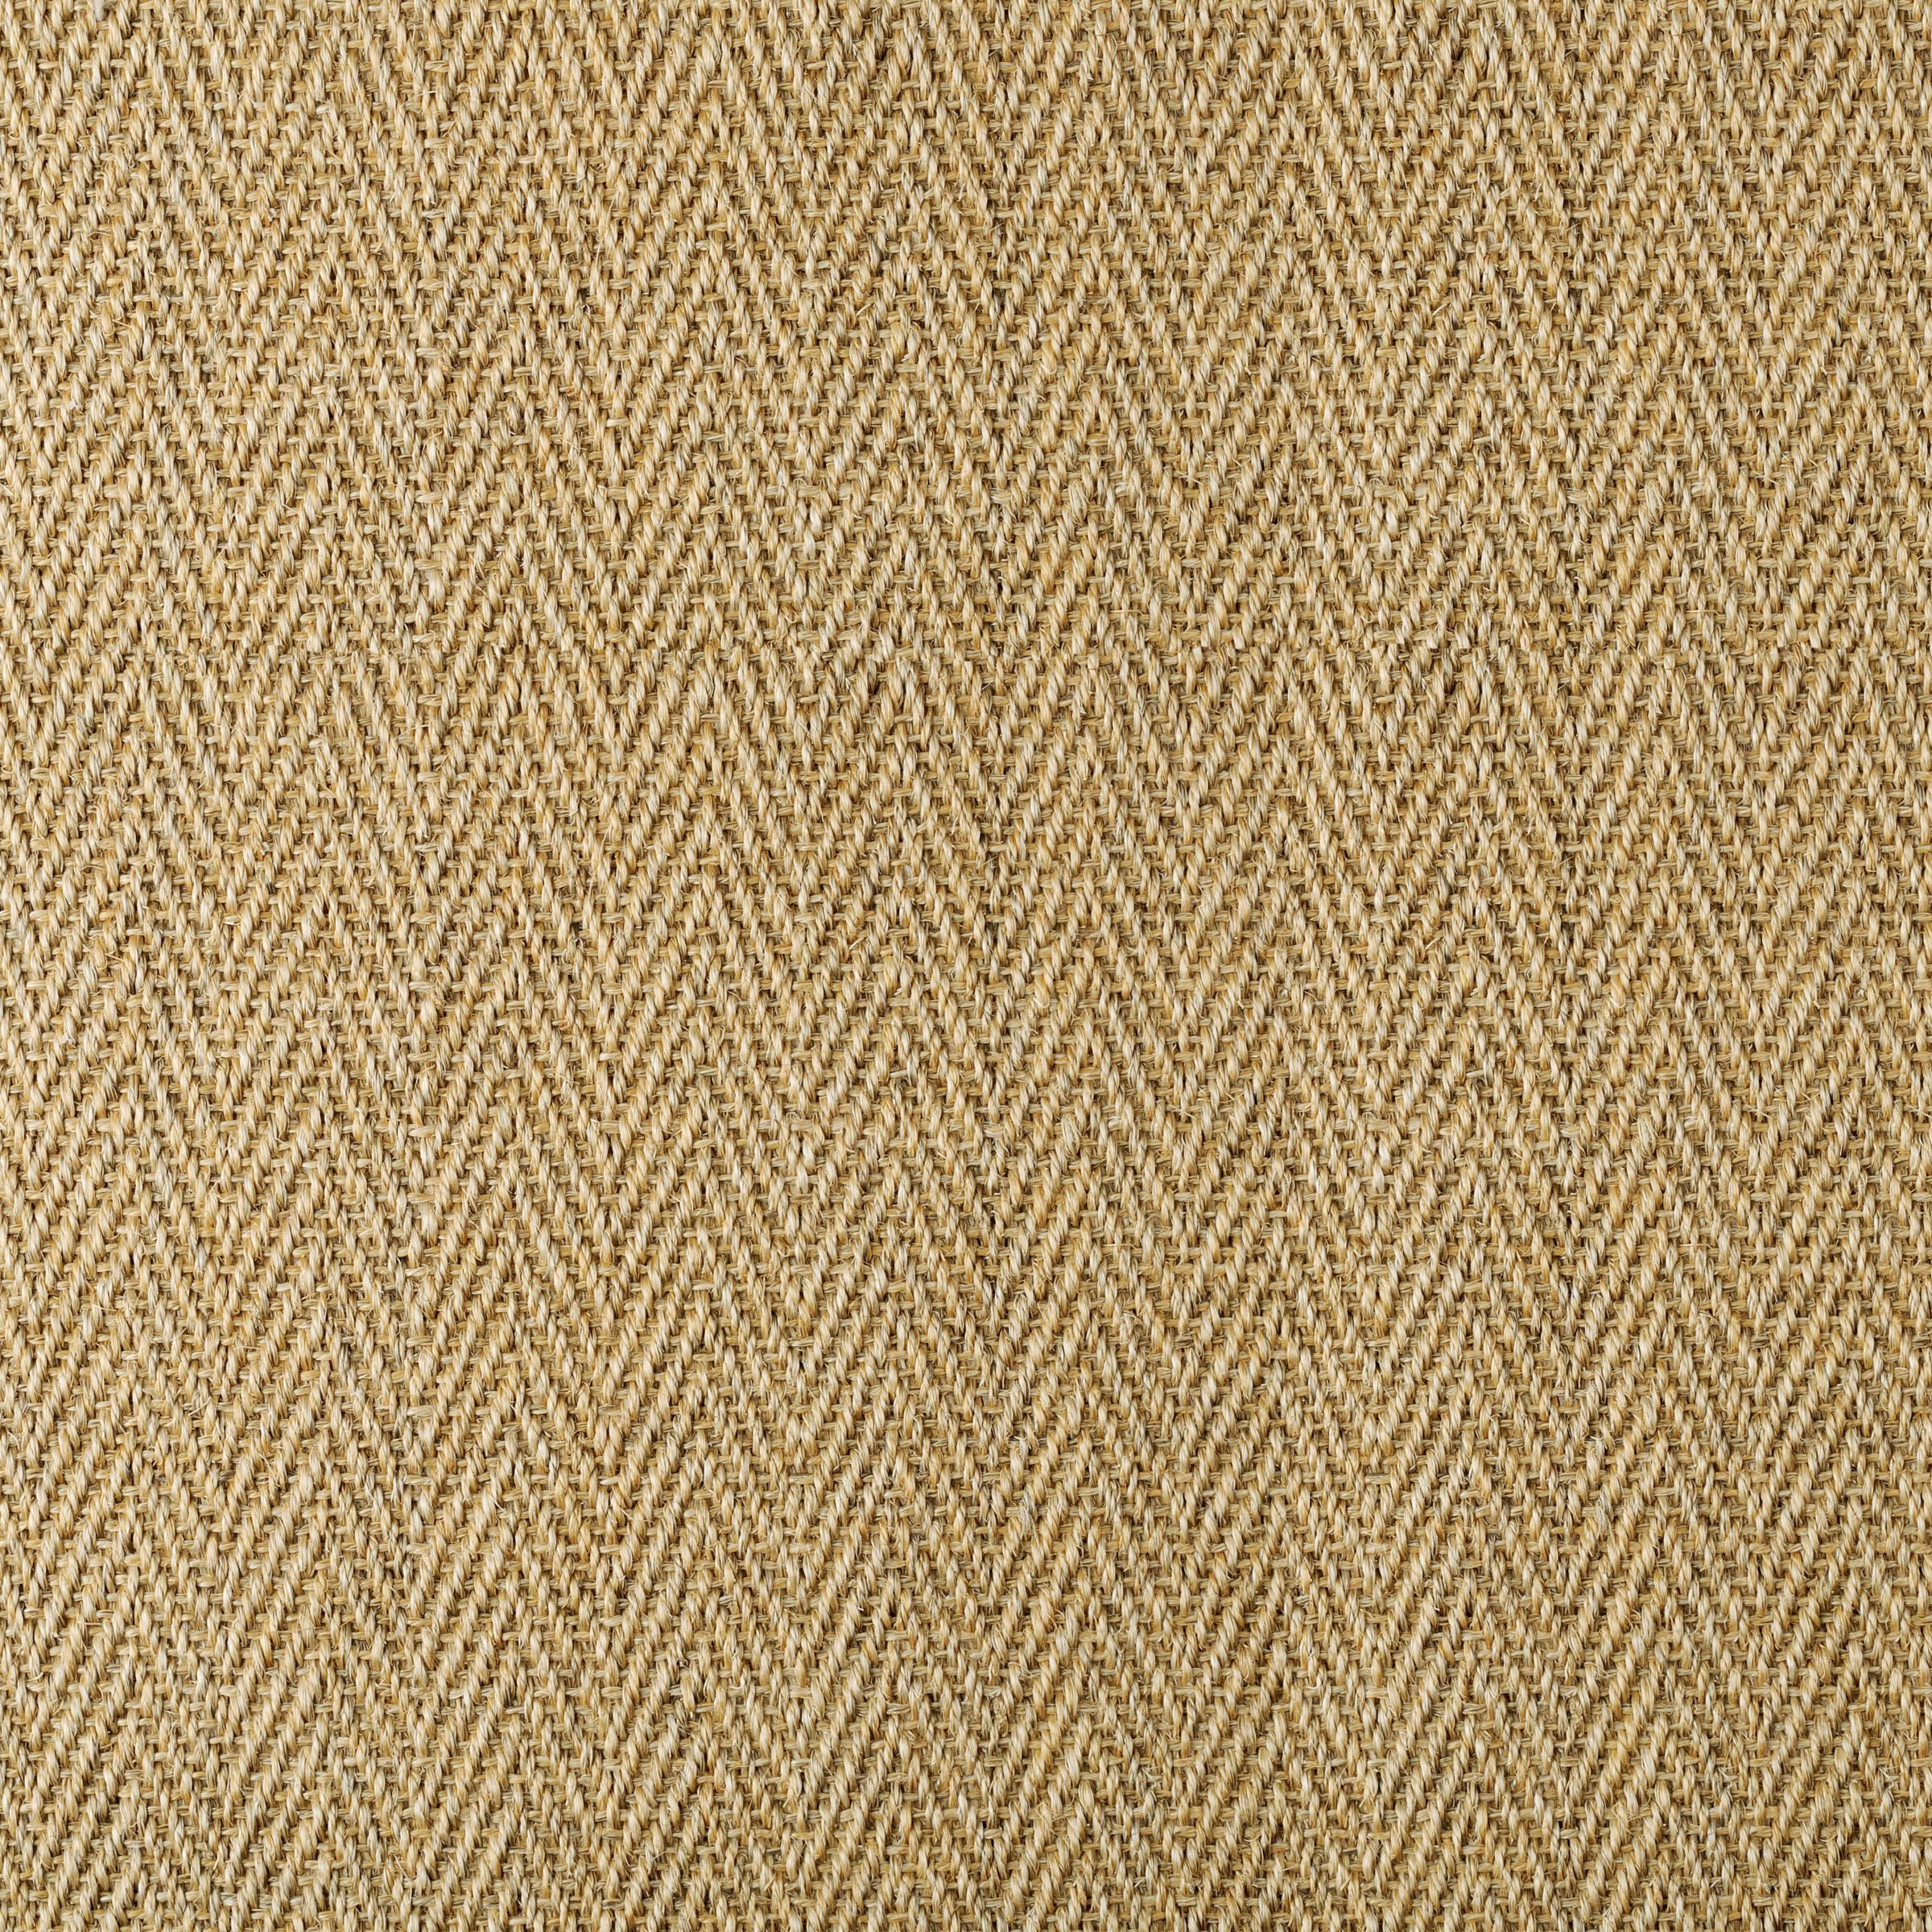 Best Sisal Herringbone Flatweave Carpet In 2020 Carpet 400 x 300